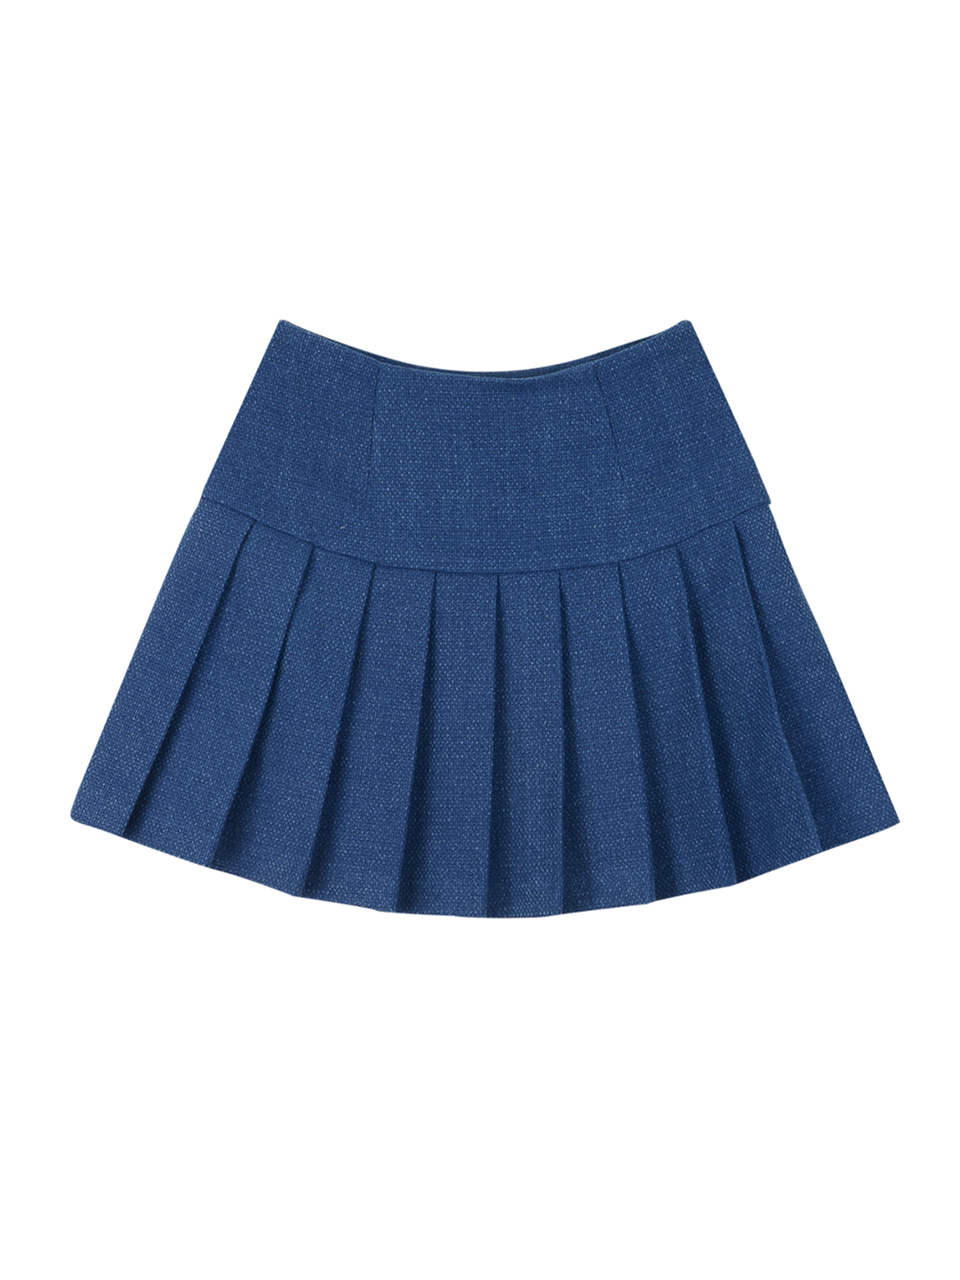 Denim pleats skirt_blue